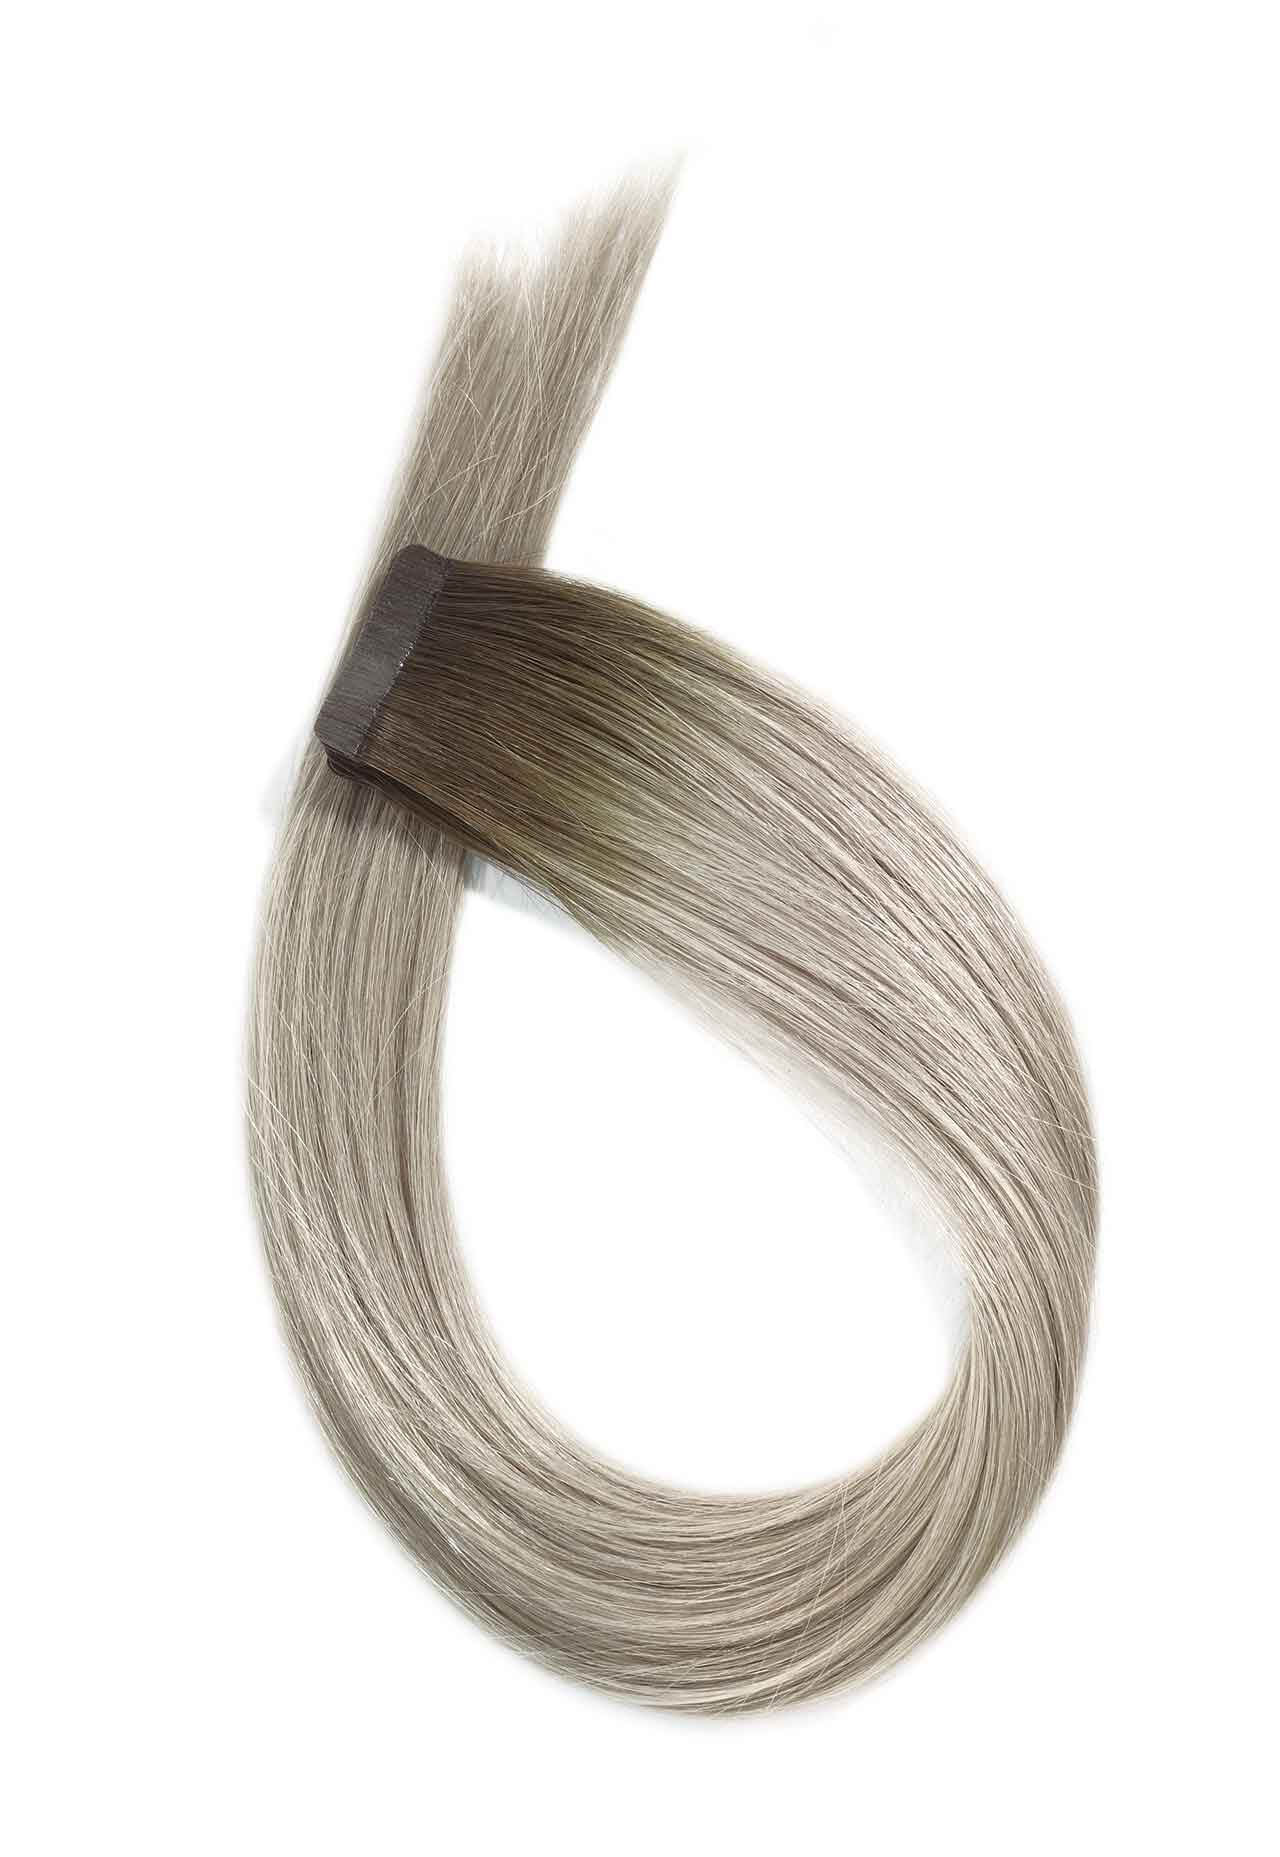 Ash Tone Tape Extensions I Beauty Works